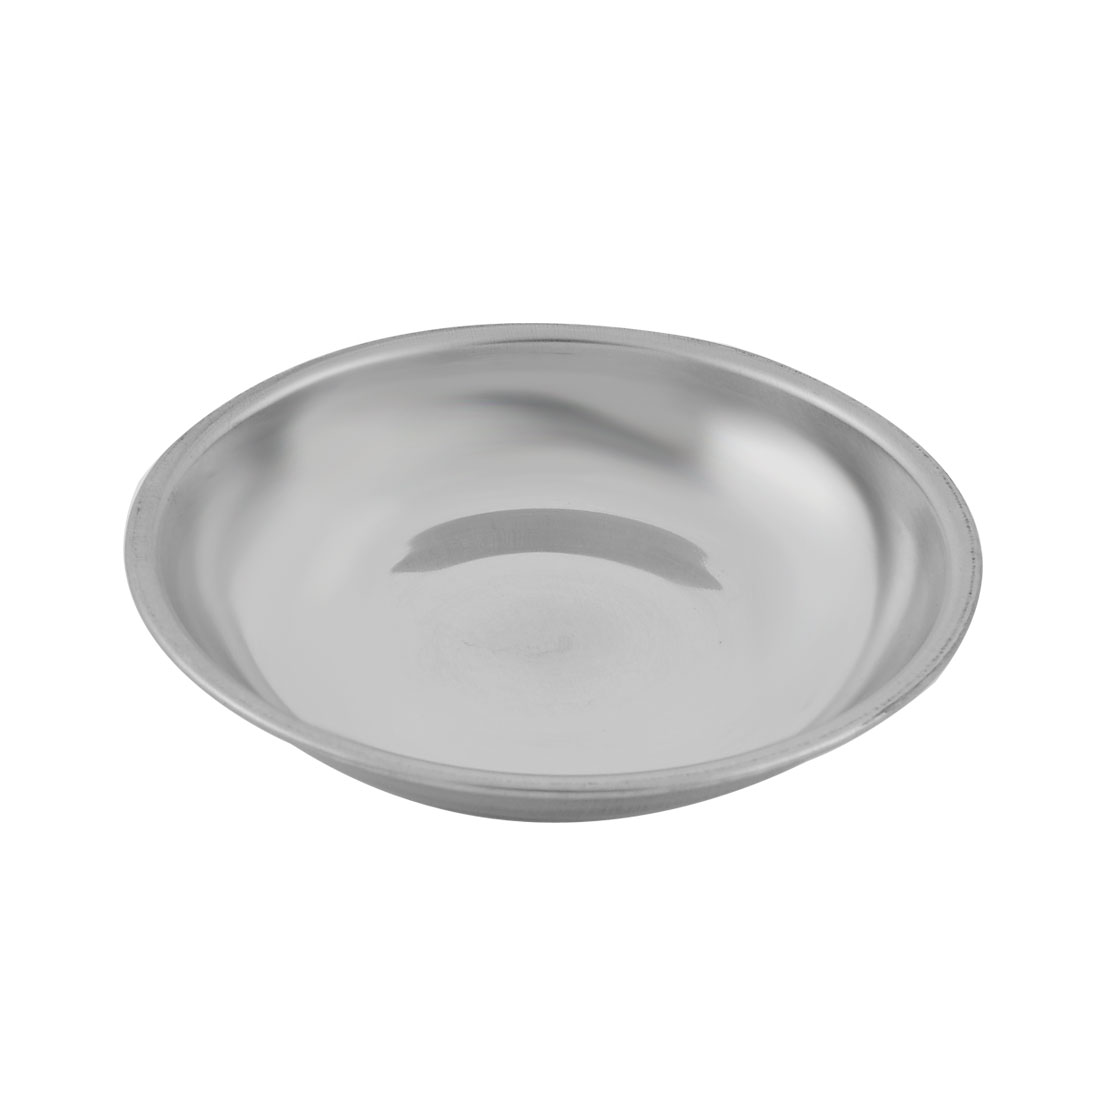 Household Metal Round Shaped Soy Sauce Spice Dish Silver Tone 10cm Diameter